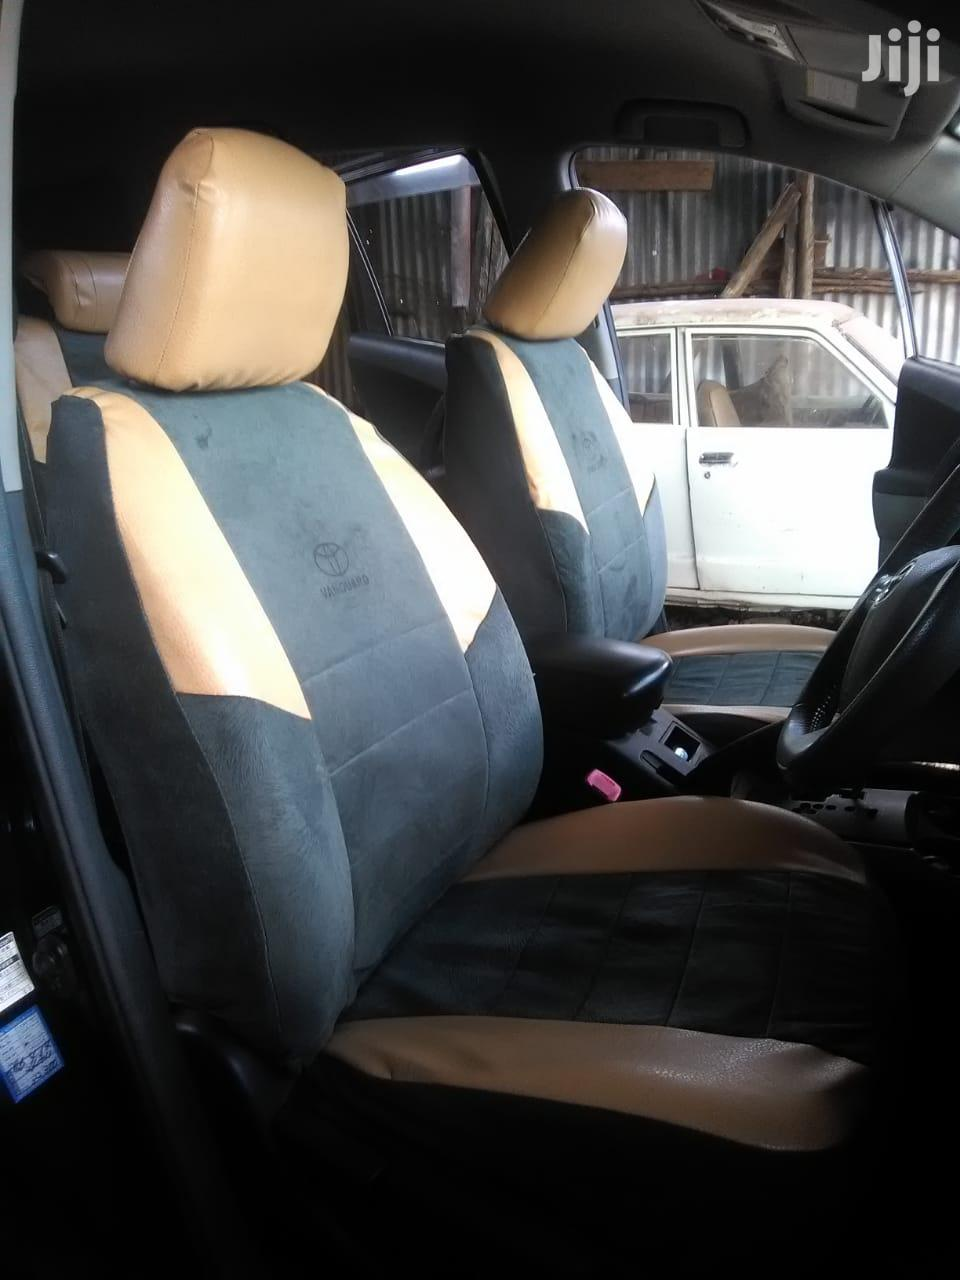 Kisumu Car Upholstery In Central Kisumu Vehicle Parts Accessories Mathew Mukoya Jiji Co Ke